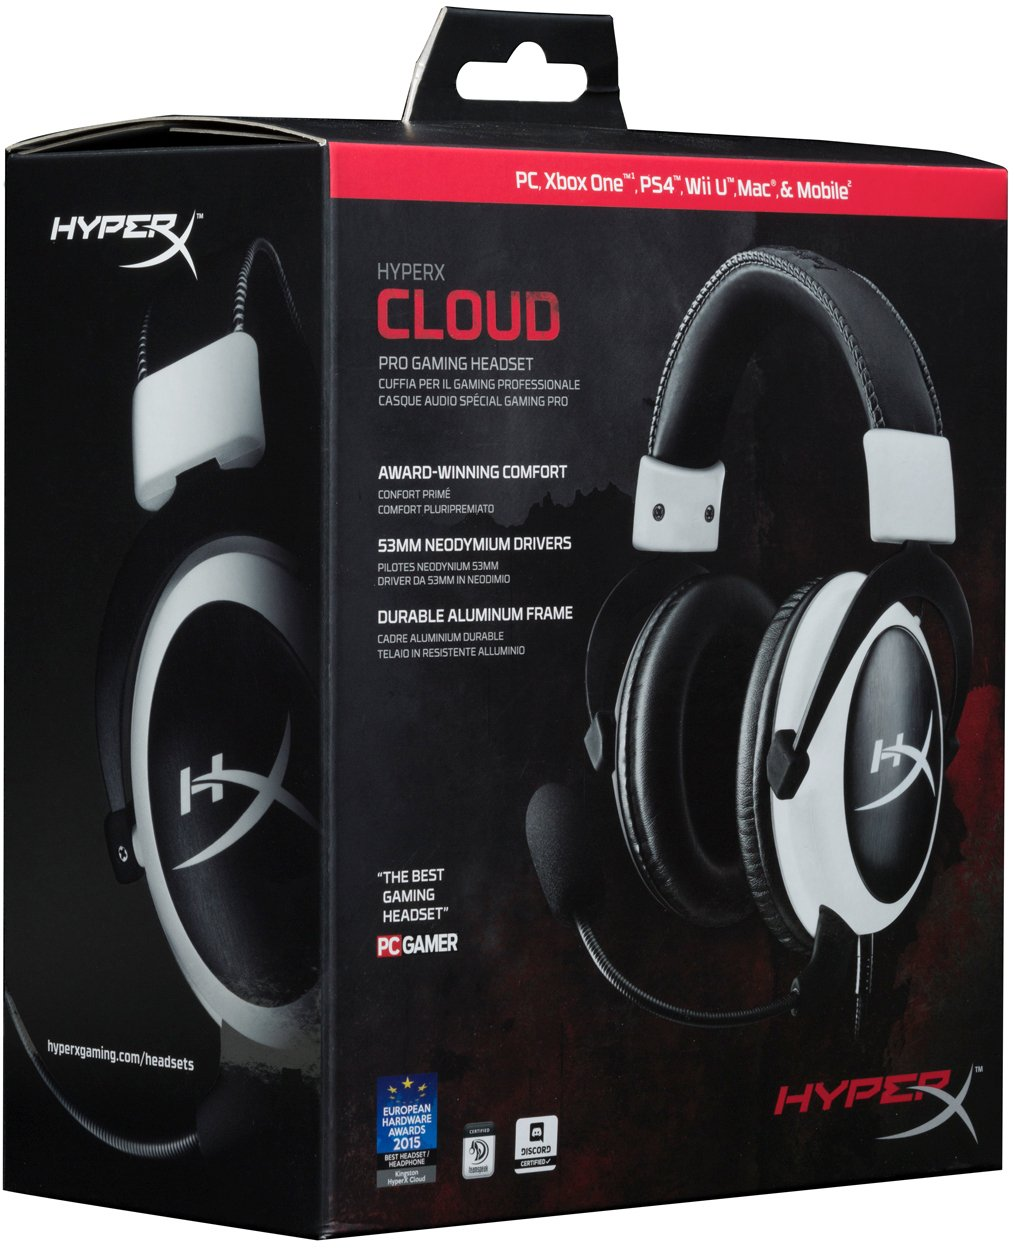 Kind of lining can you expect on the kingston hyperx cloud ii headset - Amazon Com Hyperx Cloud Gaming Headset For Pc Xbox One Ps4 Ps4 Pro Xbox One S Khx H3clw White Kingston Technology Hxs Hscc1 Official Cloud